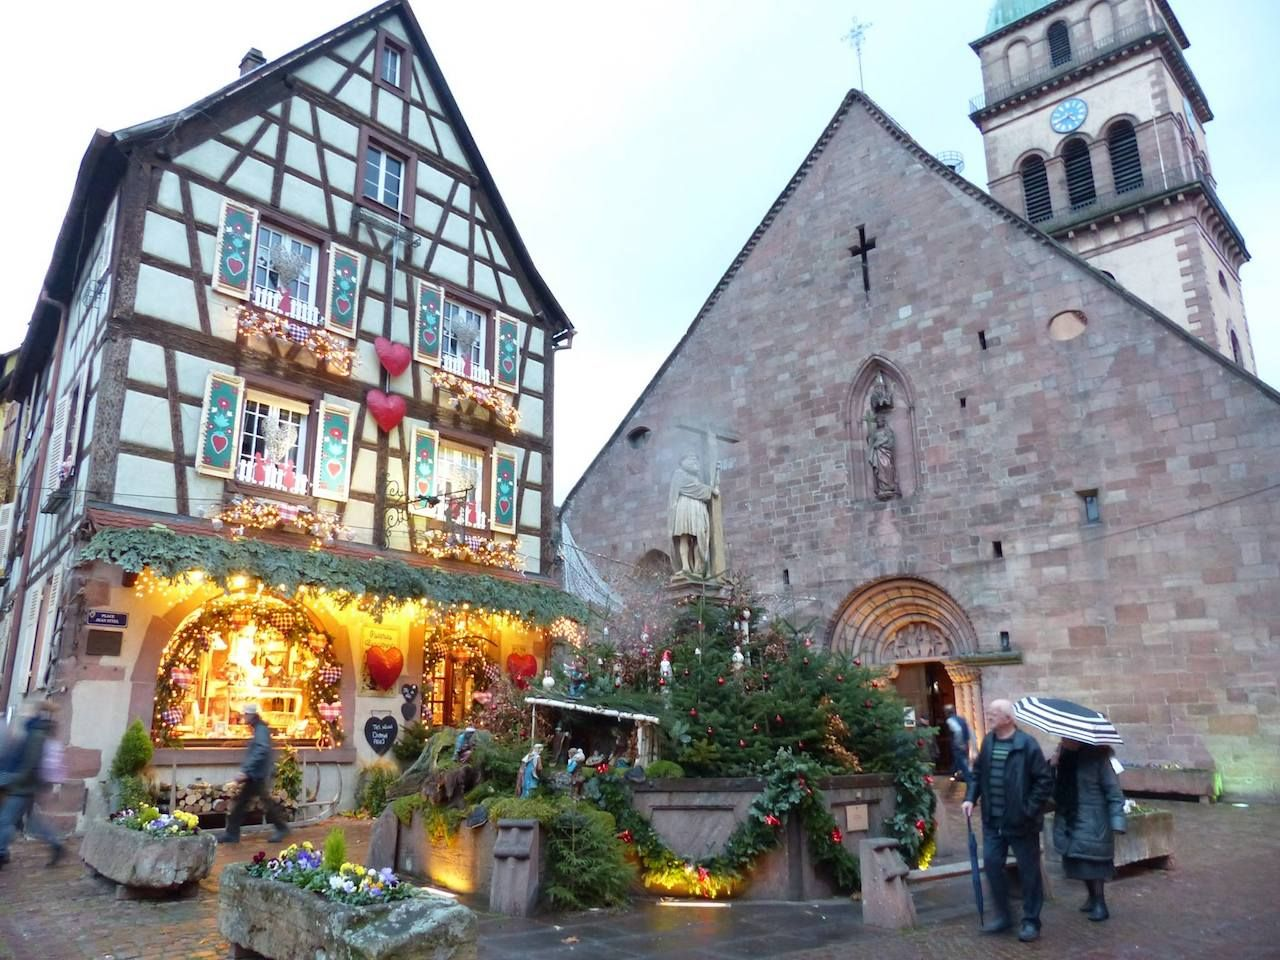 Buildings with Christmas decorations in Kaysersberg, France